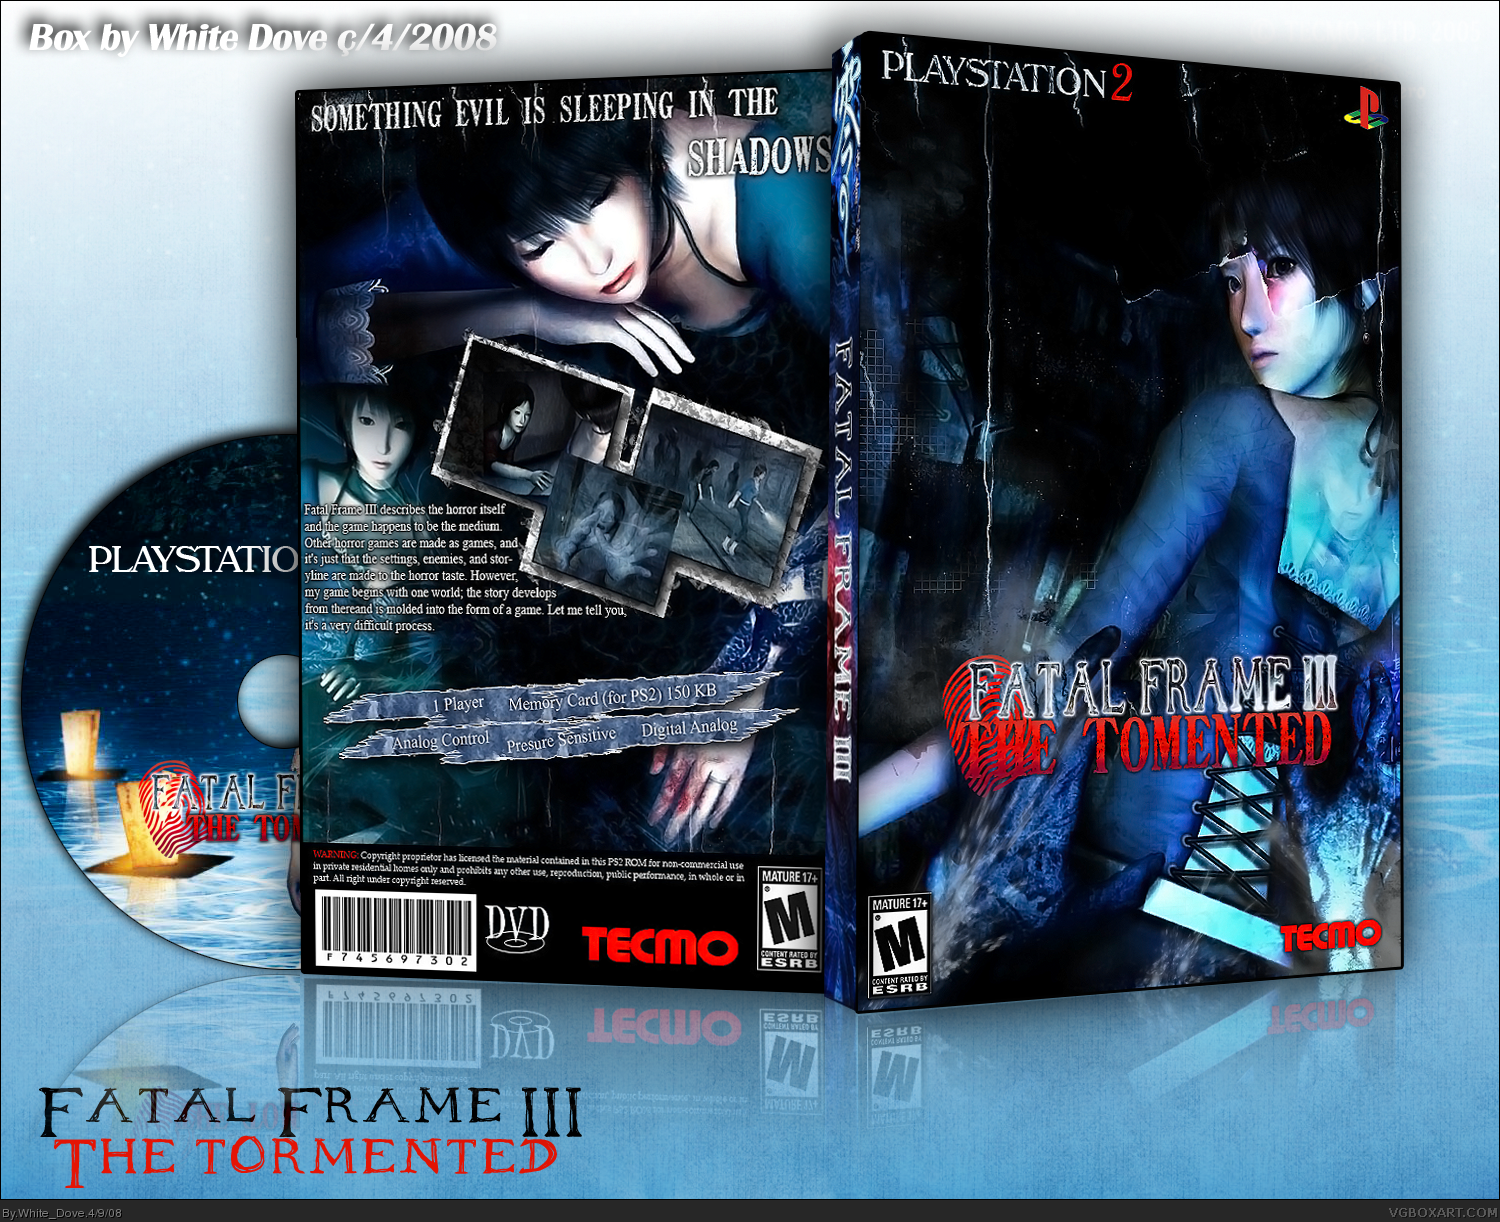 Fatal Frame III: The Tormented PlayStation 2 Box Art Cover by White_Dove